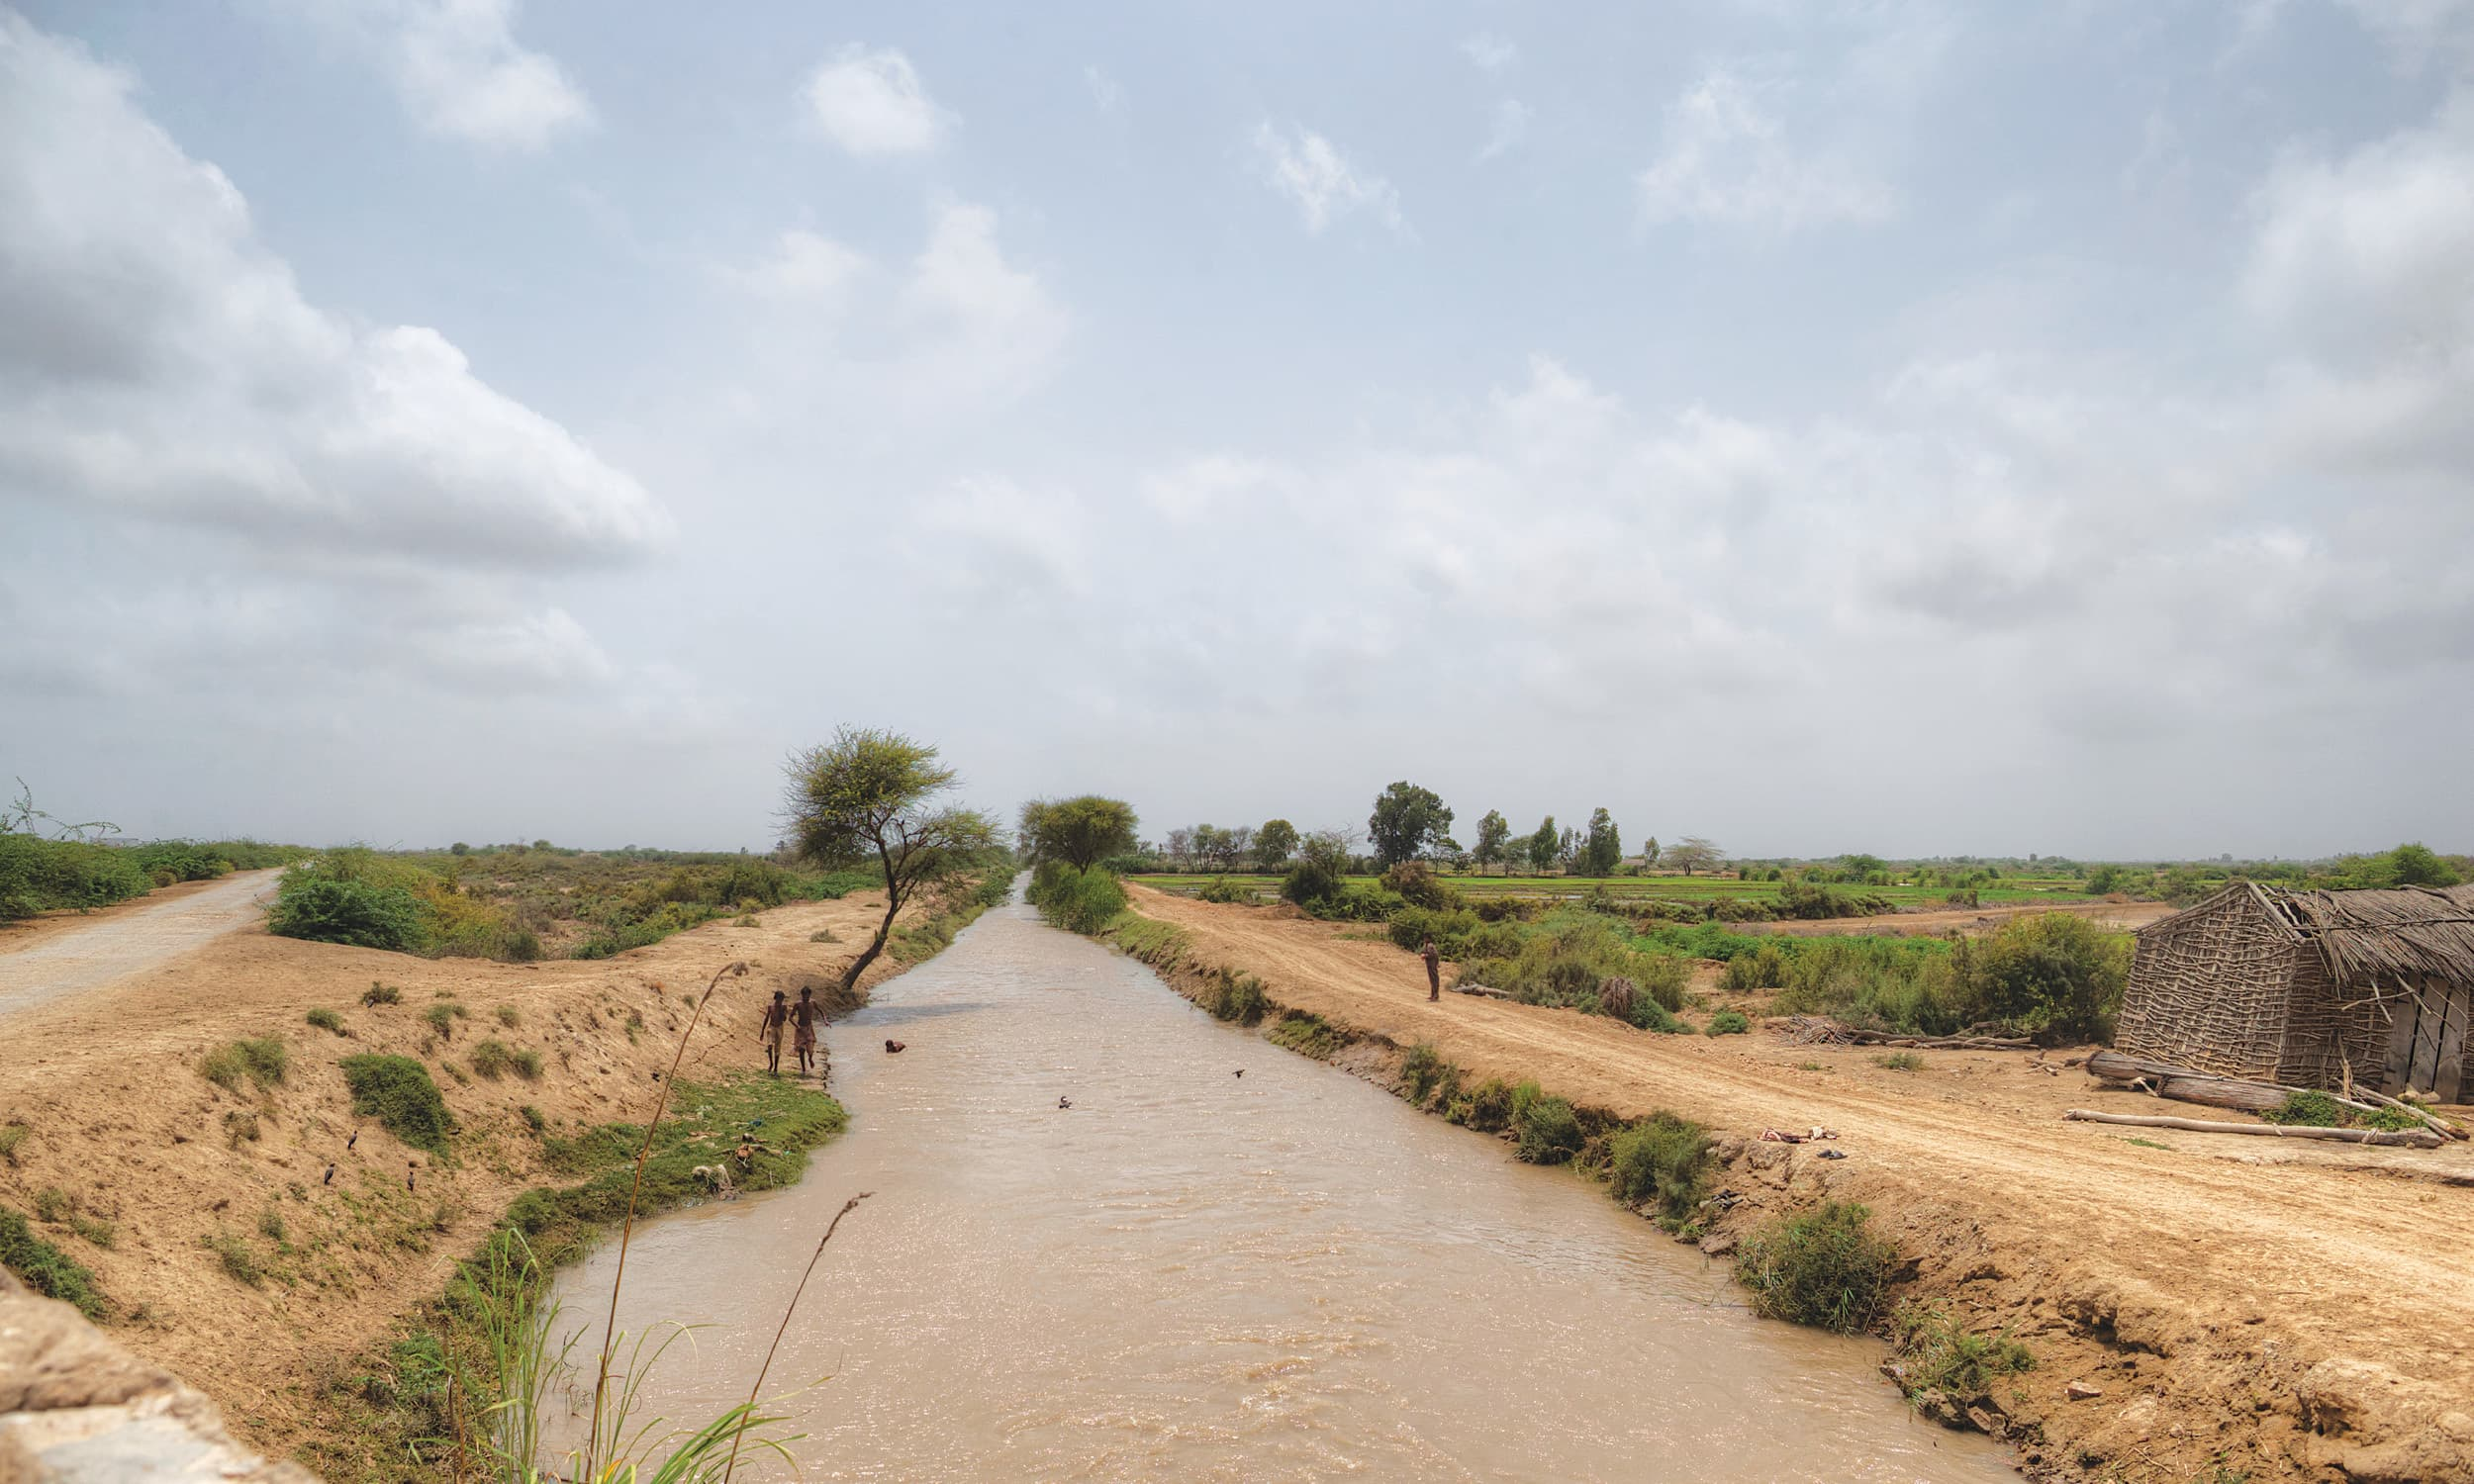 The view from a bridge a few kilometres from Gharo, Sindh | Kohi Marri